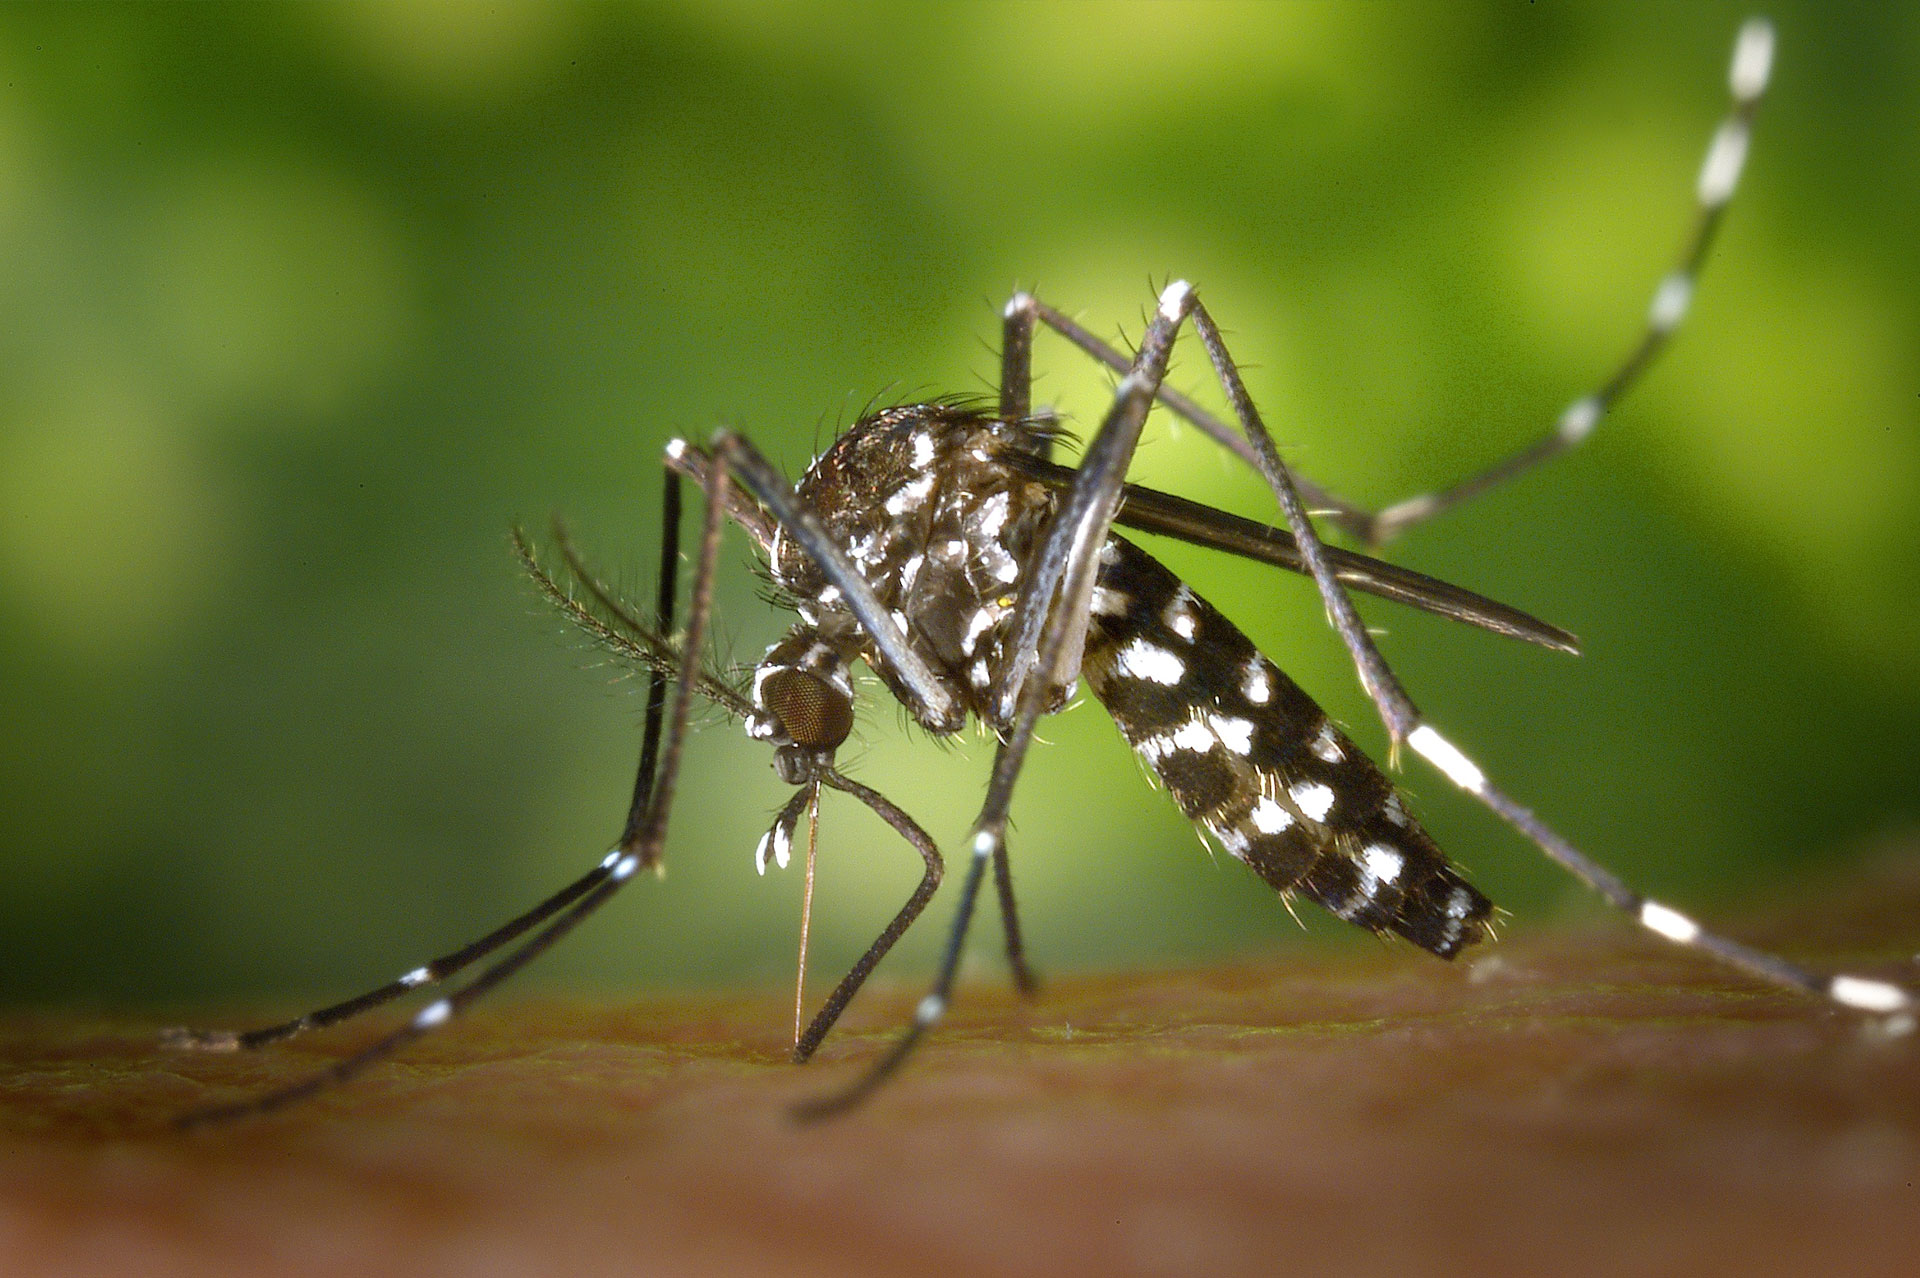 Preventive steps to keep away mosquito-borne diseases